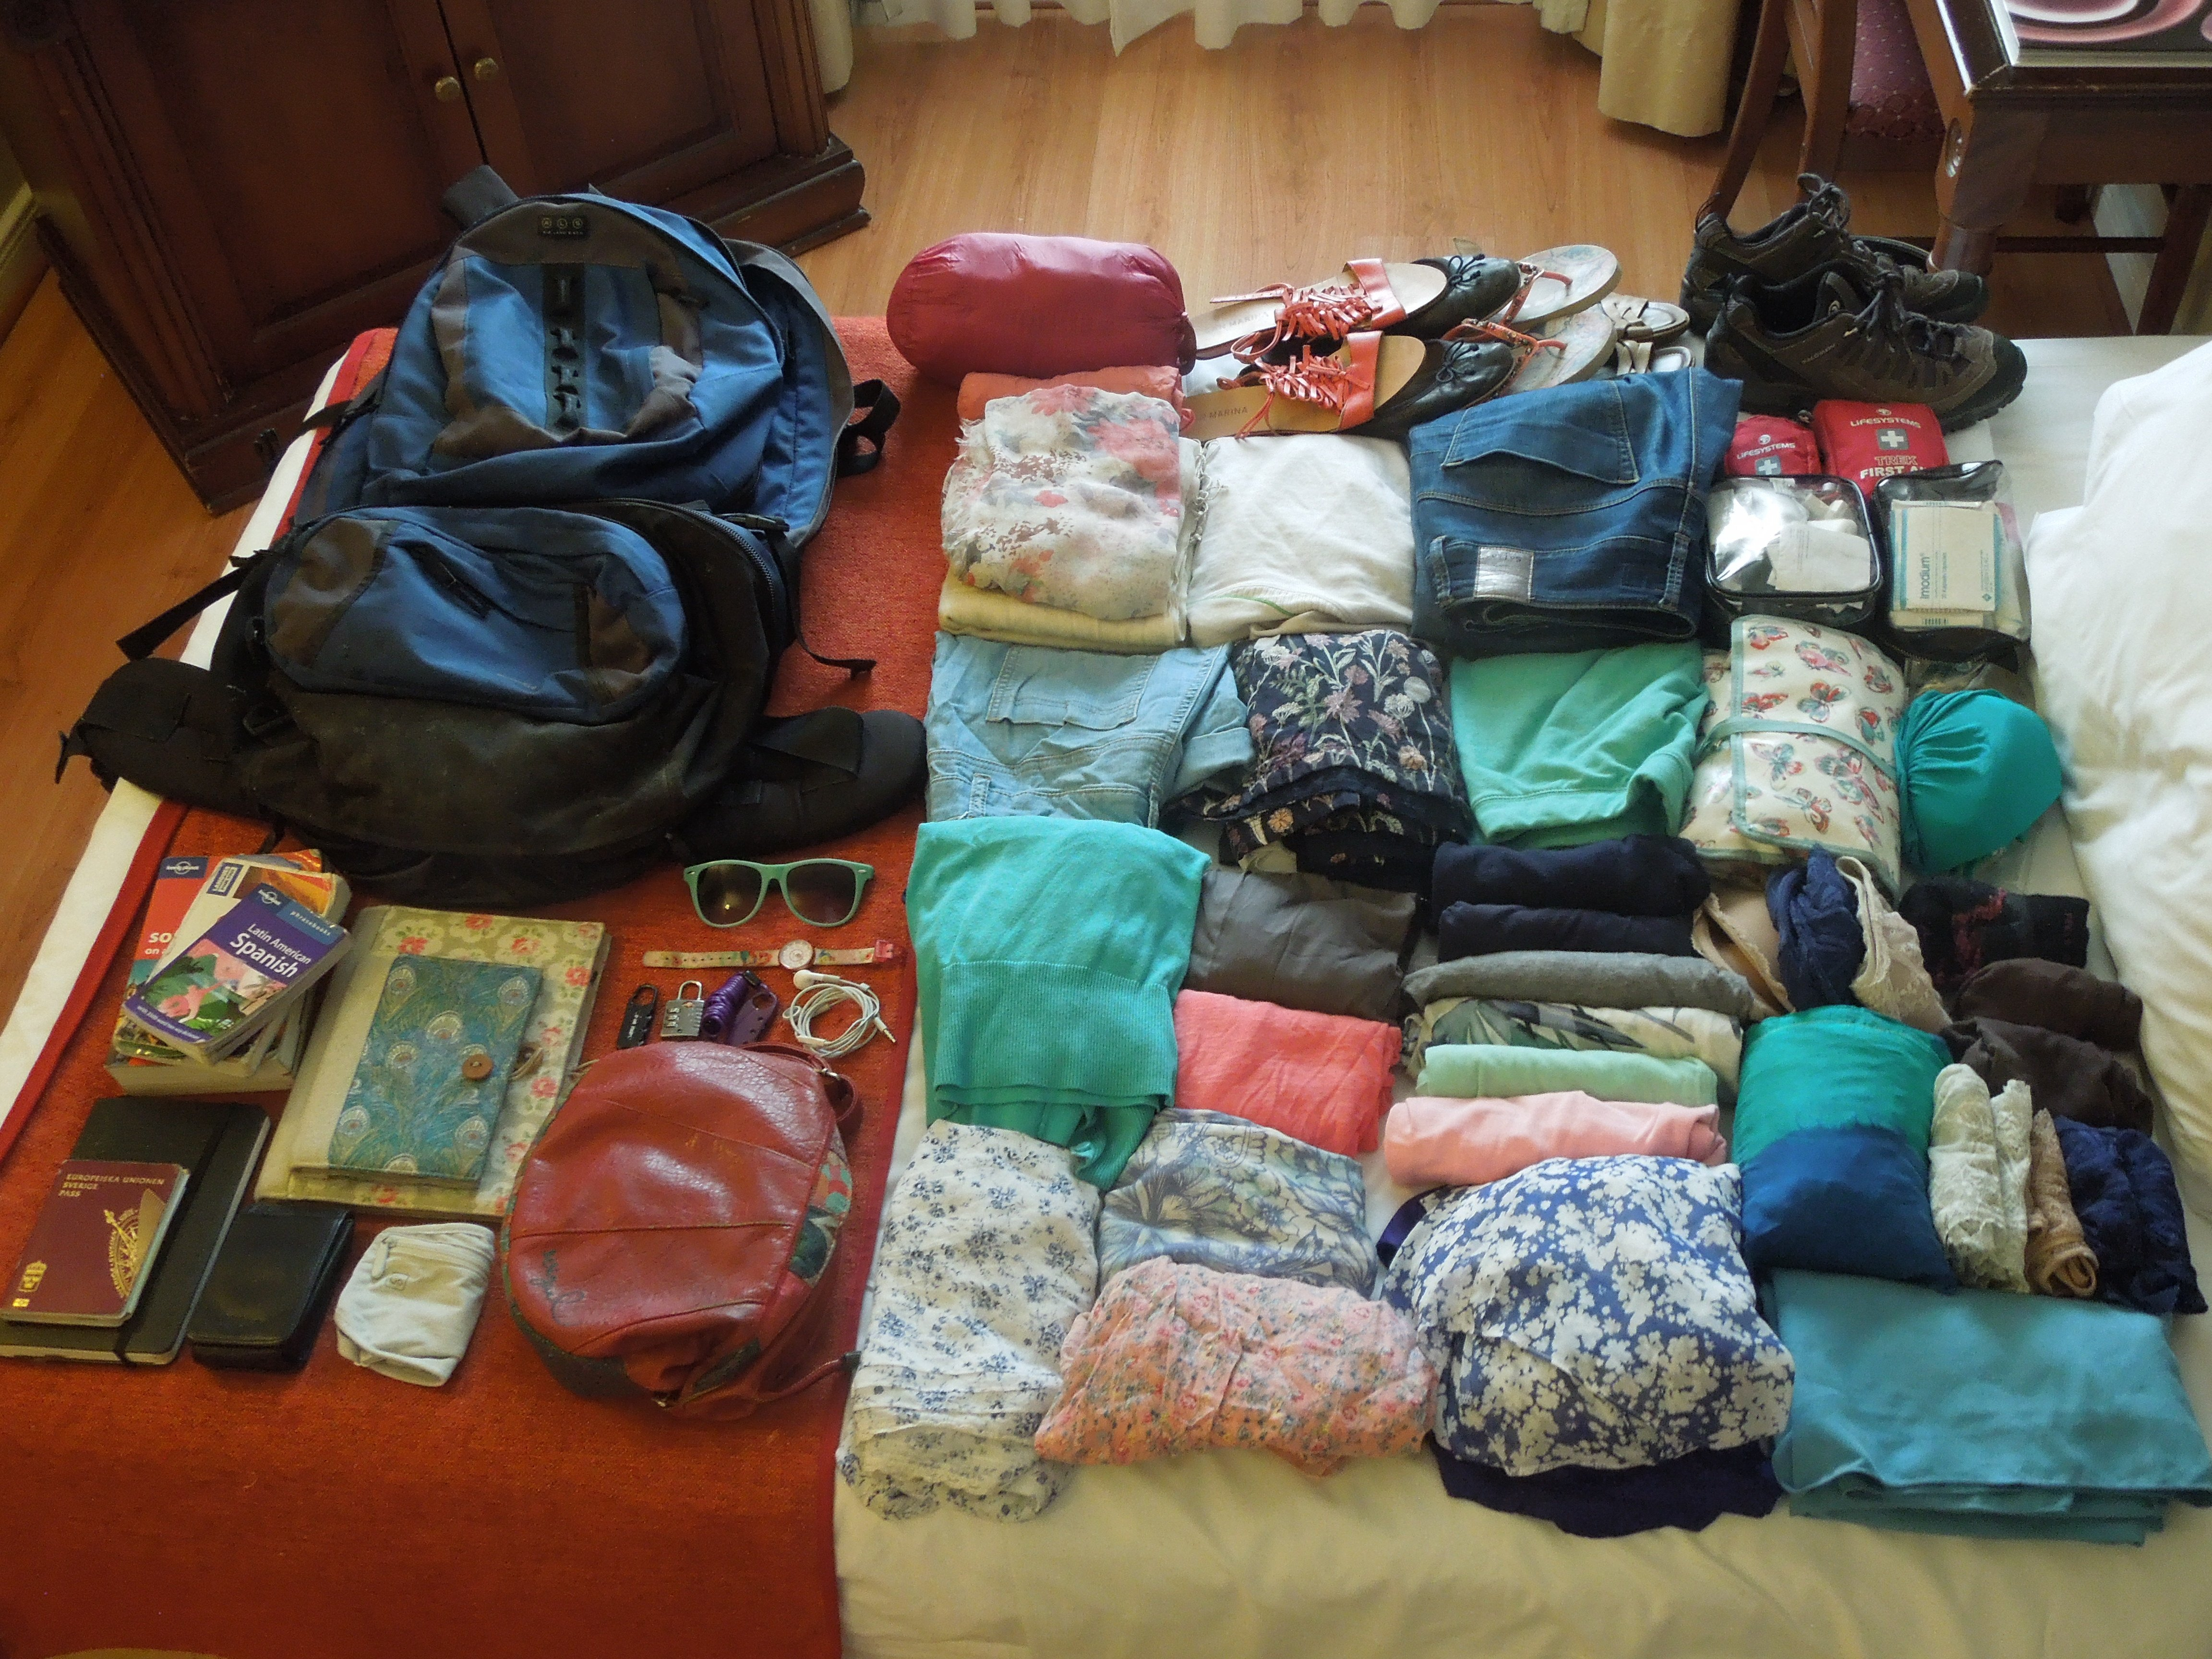 c017bd459 Packing list for three months in South America: what to bring and ...